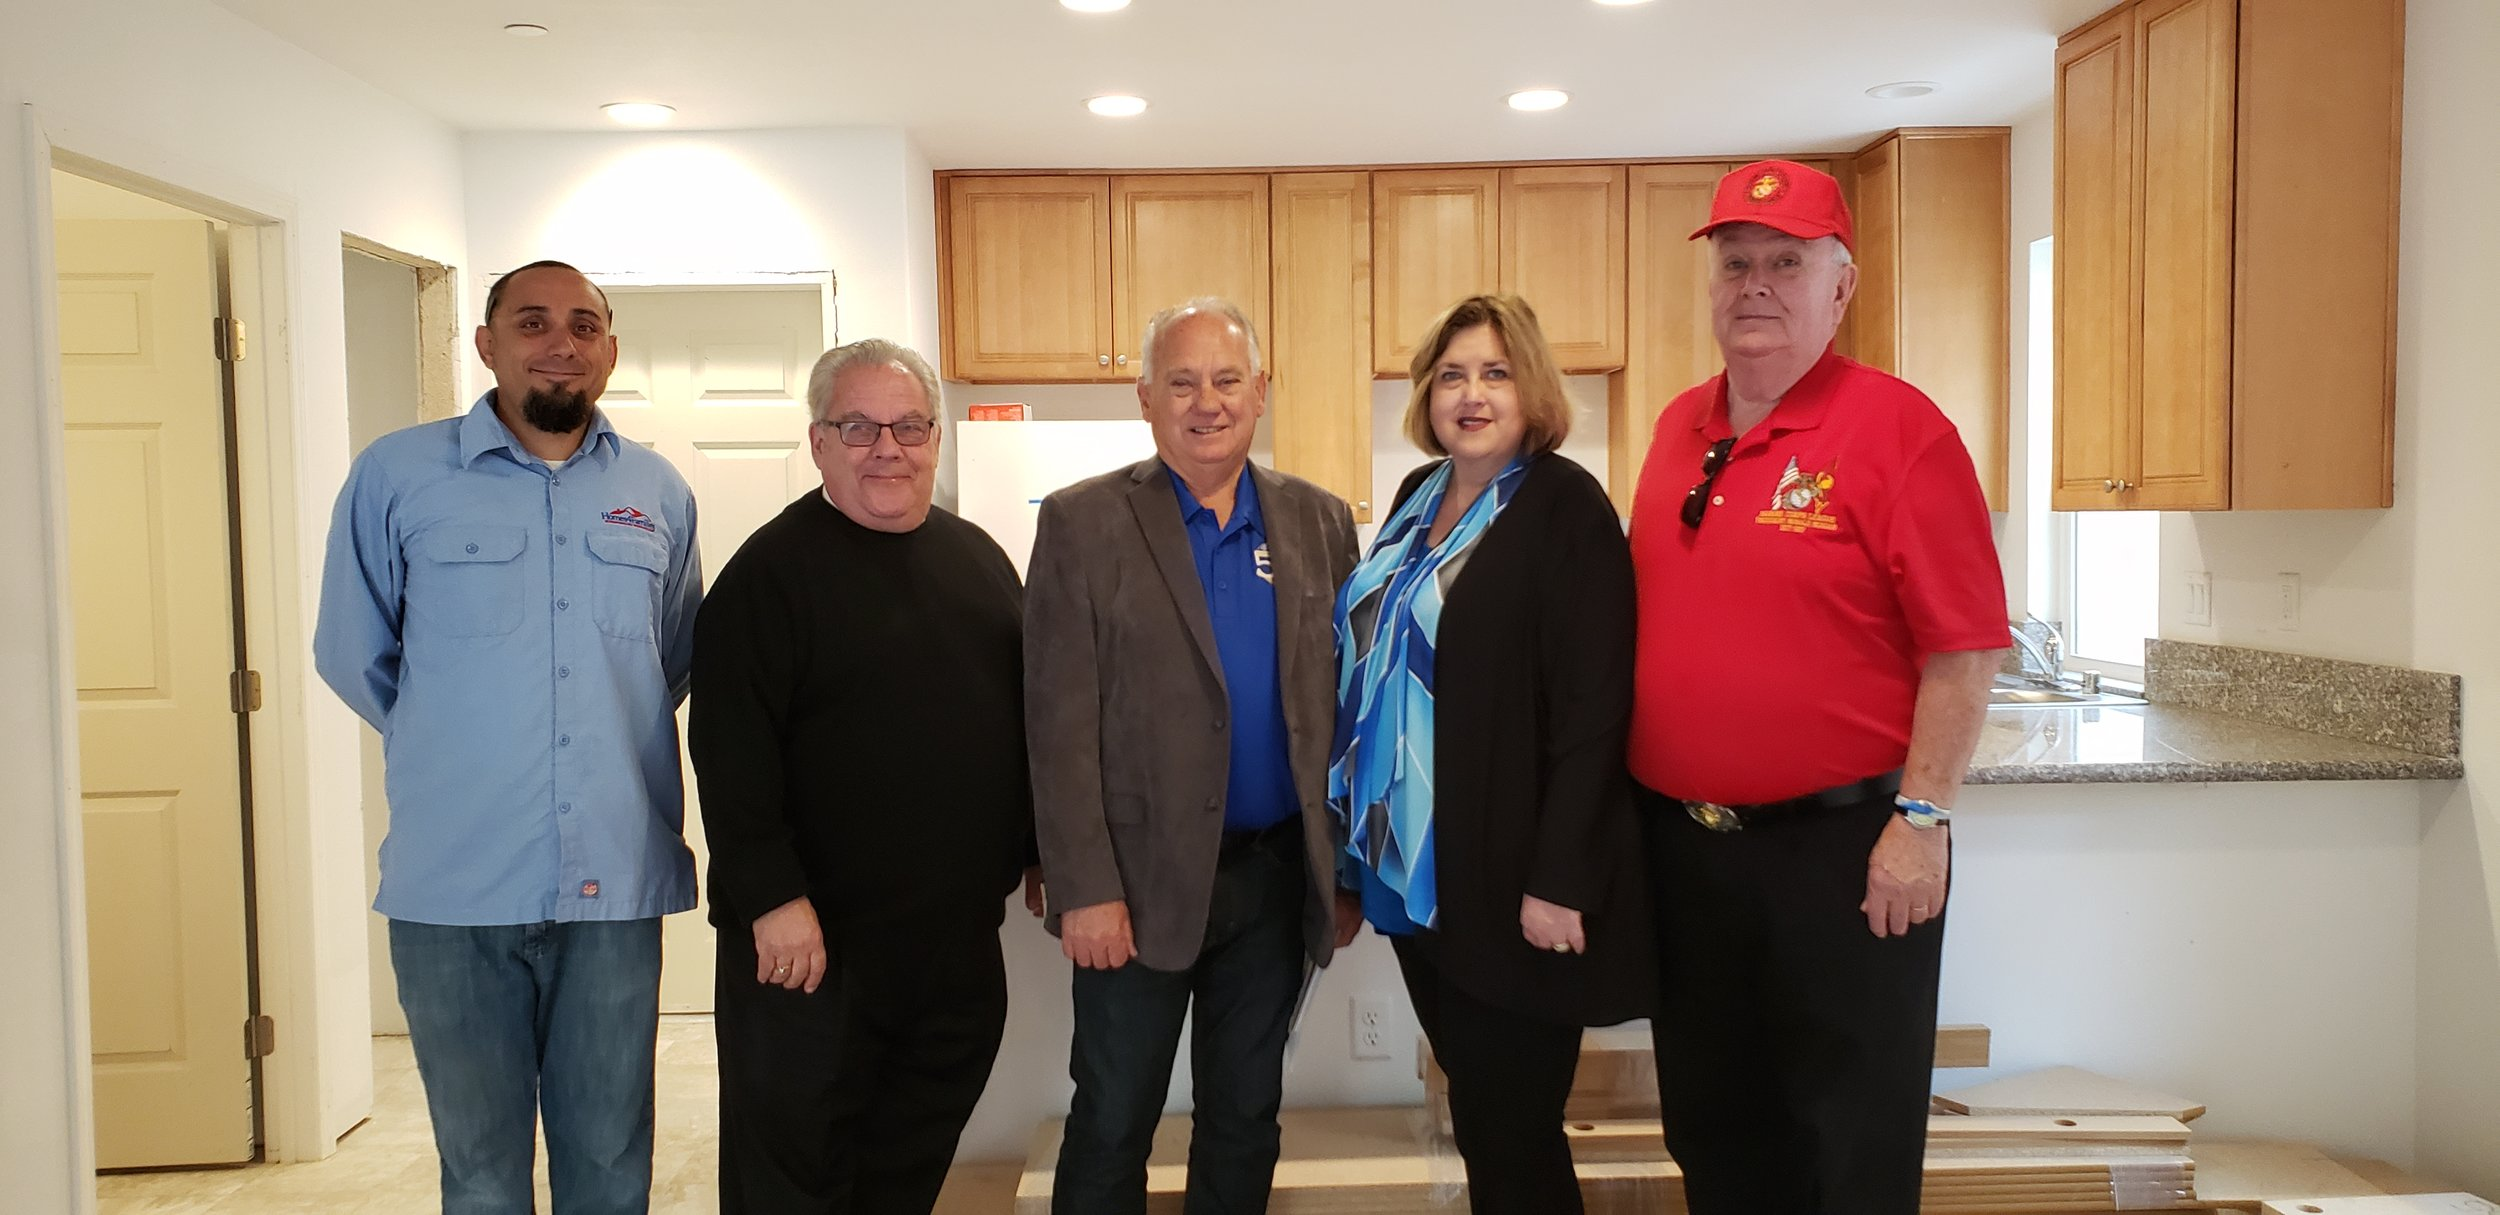 April 29, 2019   Commandant Dick Jennings on His Visit to the Homes4Families Disabled Veteran Housing Site in Santa Clarita.  L/R: Braily Franco, General Superintendent.  Hunt Braly, Chairman, Board of Directors Home4Families  Keith Mashburn, Simi Valley Mayor, checking out possible housing for Simi Valley.  Donna Deutchman, President/CEO Homes4Families.  Dick Jennings, Commandant.